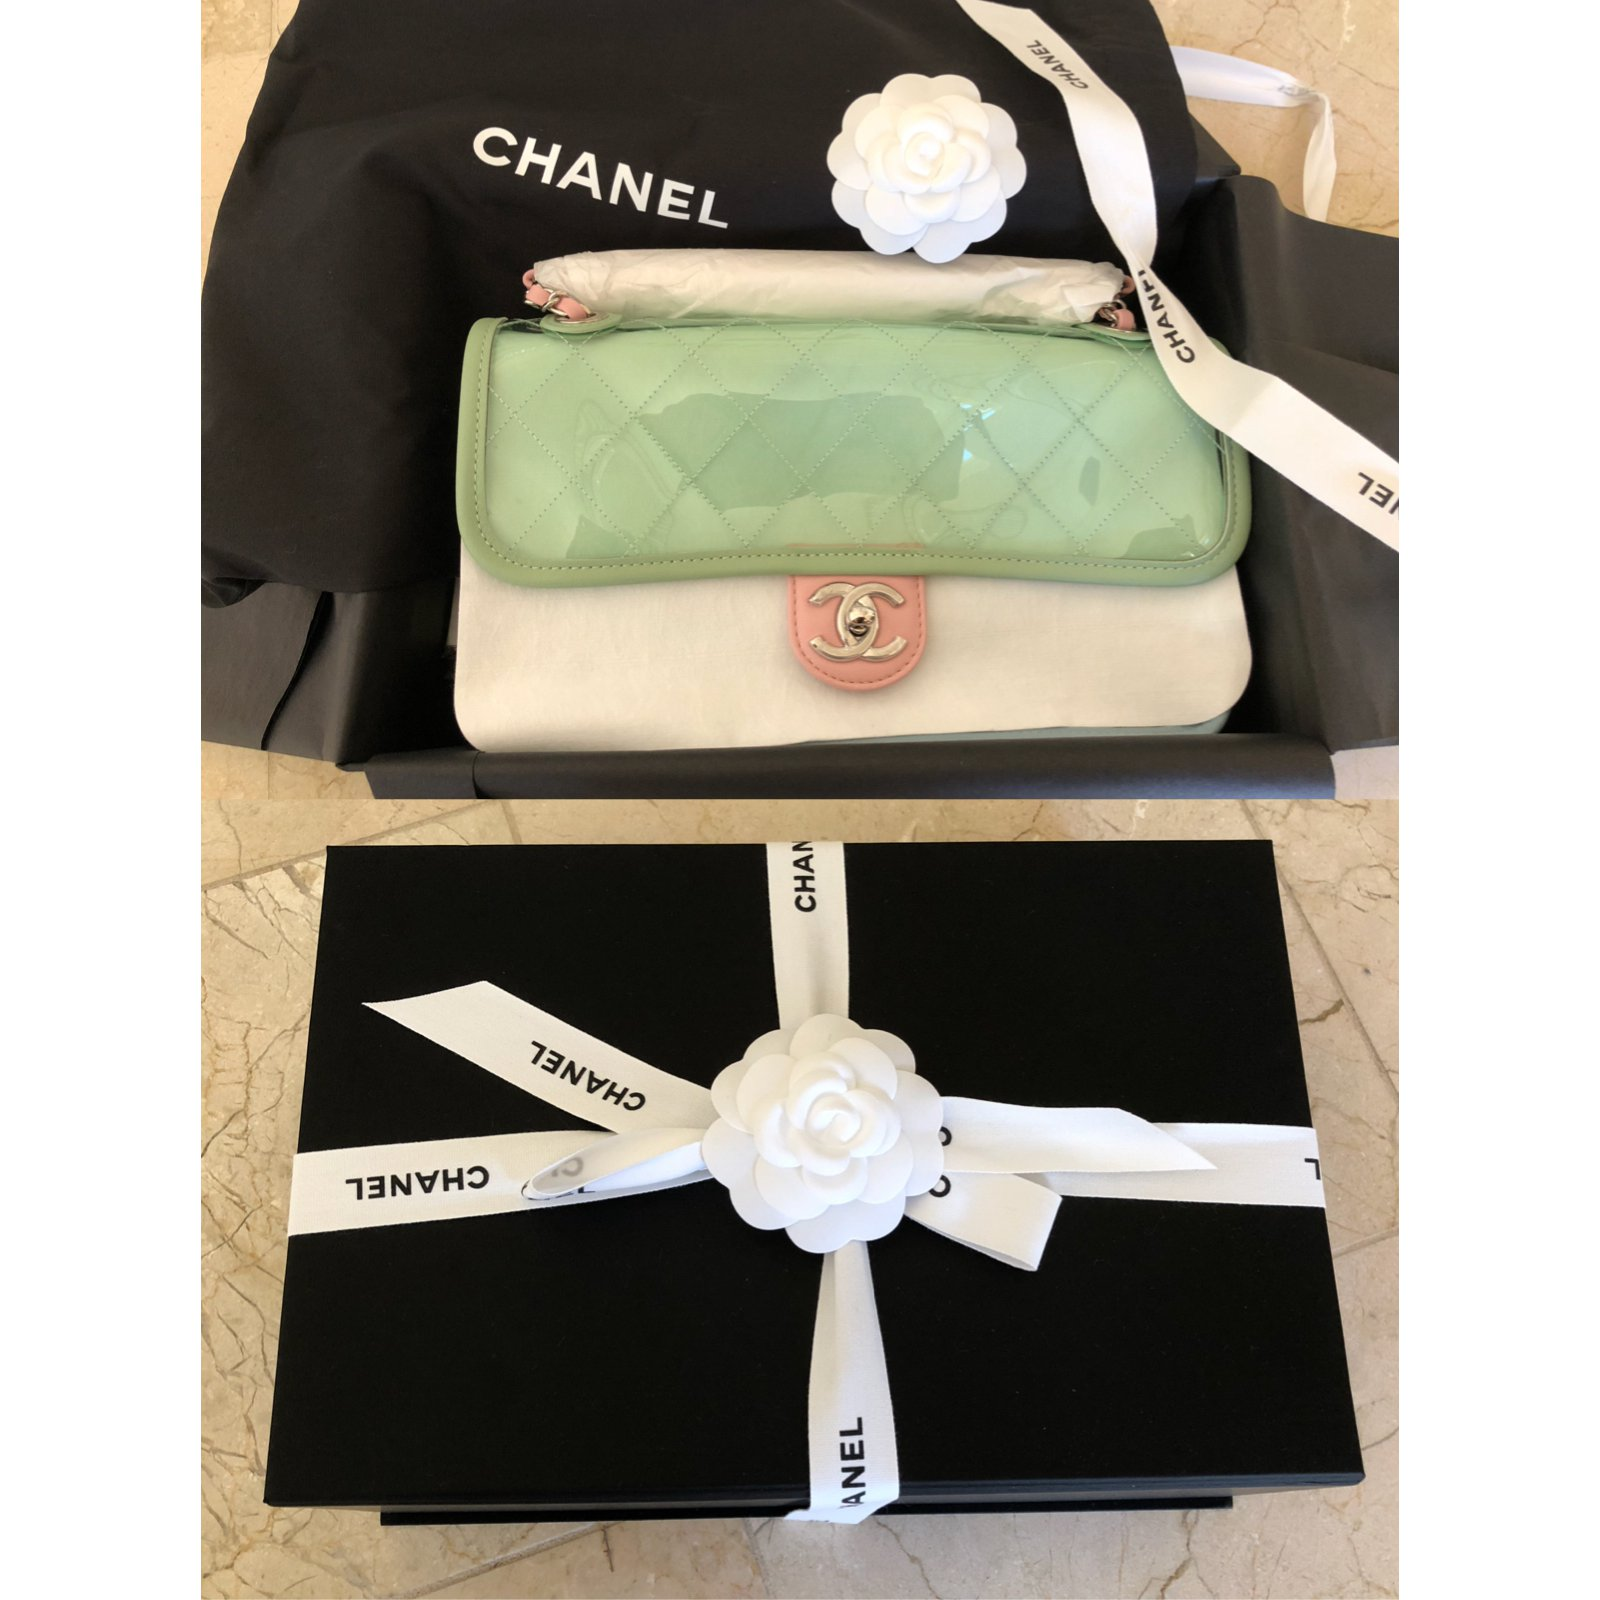 5697fd6f8ec Chanel Runway Quilted Single Flap with Silver Chain Green/Blue/Pink  PVC/Lambskin Bag Handbags Plastic Multiple colors ref.65207 - Joli Closet